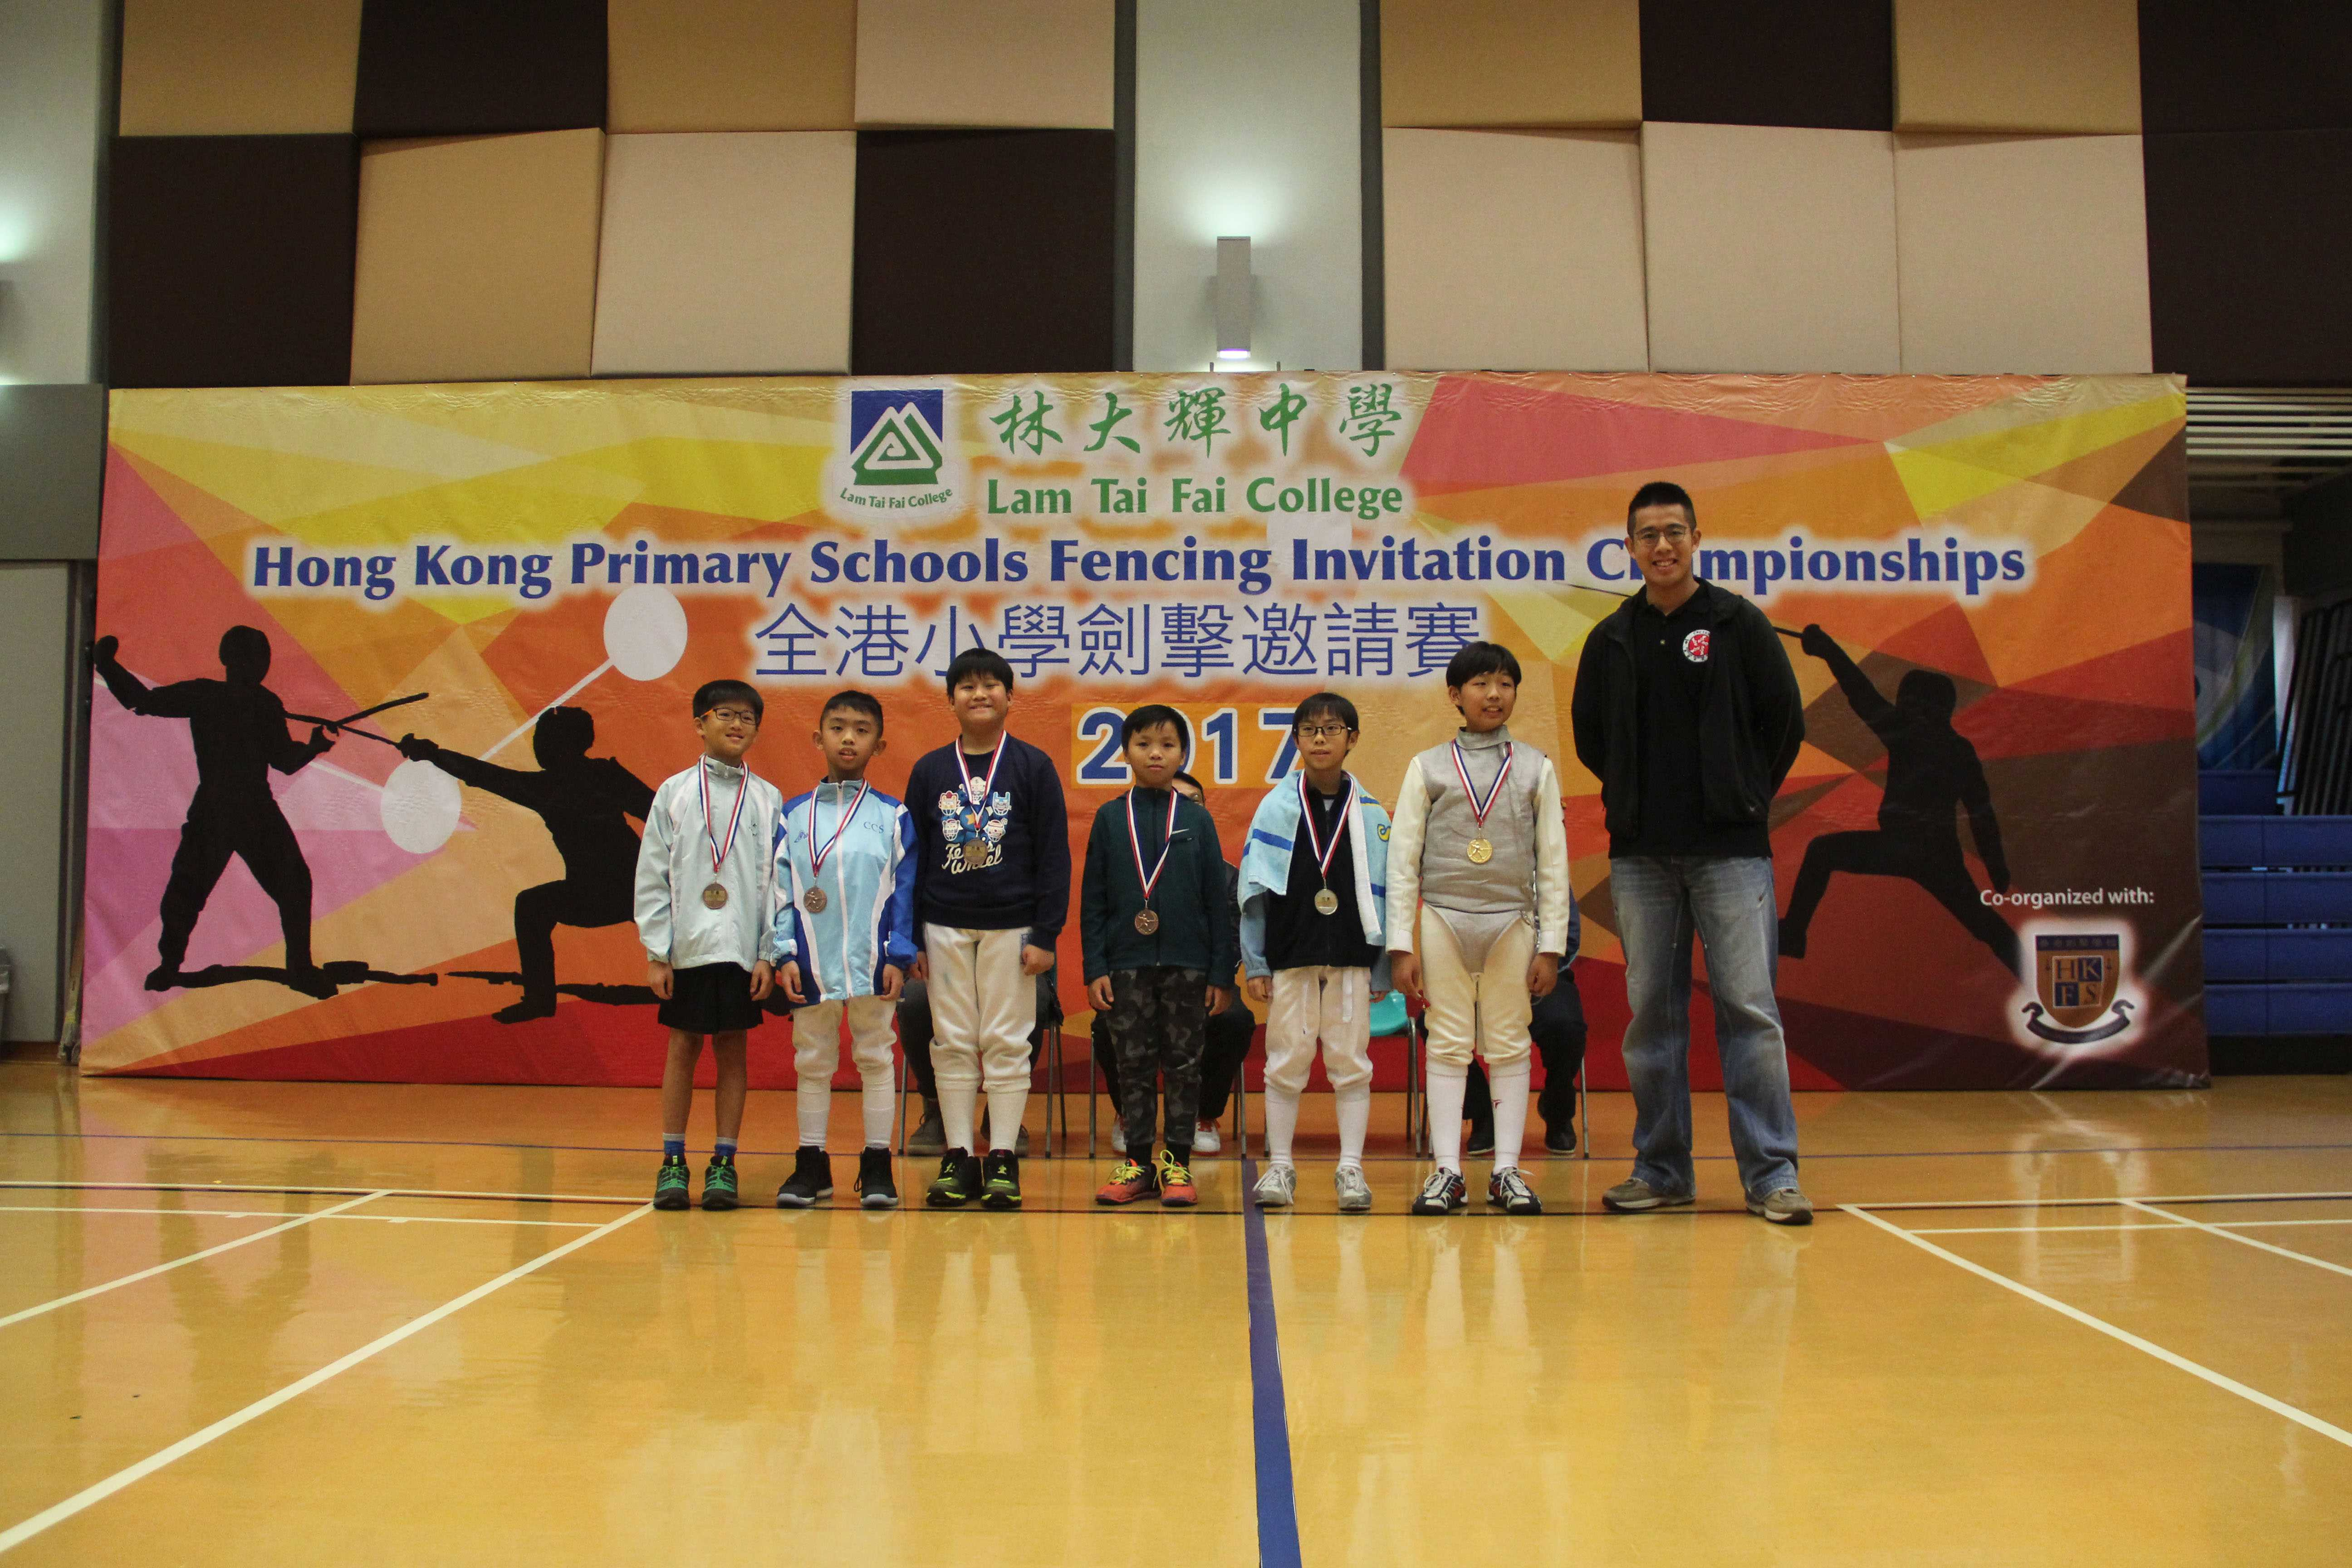 Hong Kong Primary Schools Fencing Invitation Championships 2017 - Results Announcement